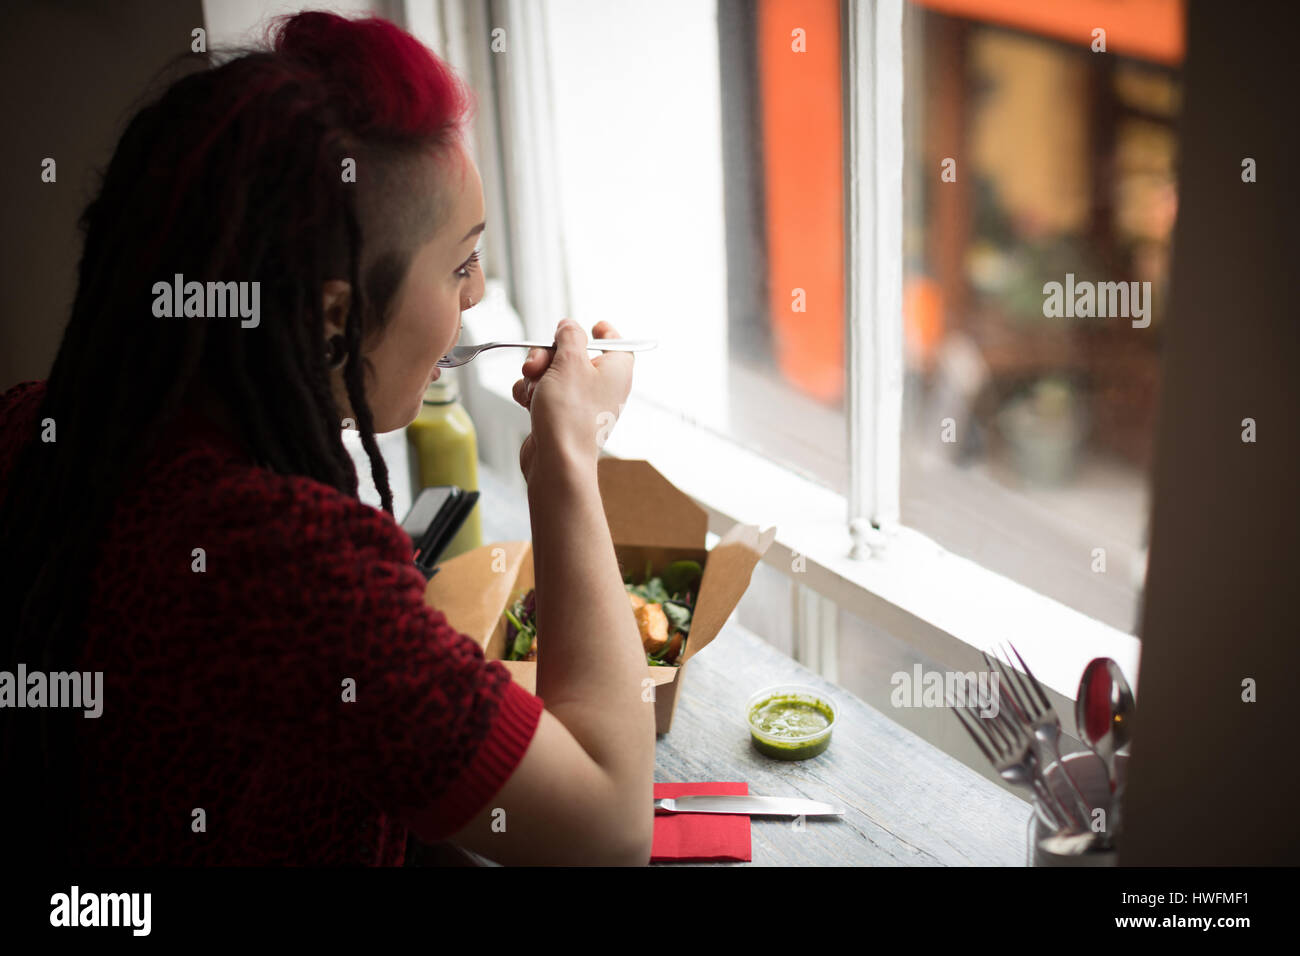 Woman looking through window while having a salad in café - Stock Image